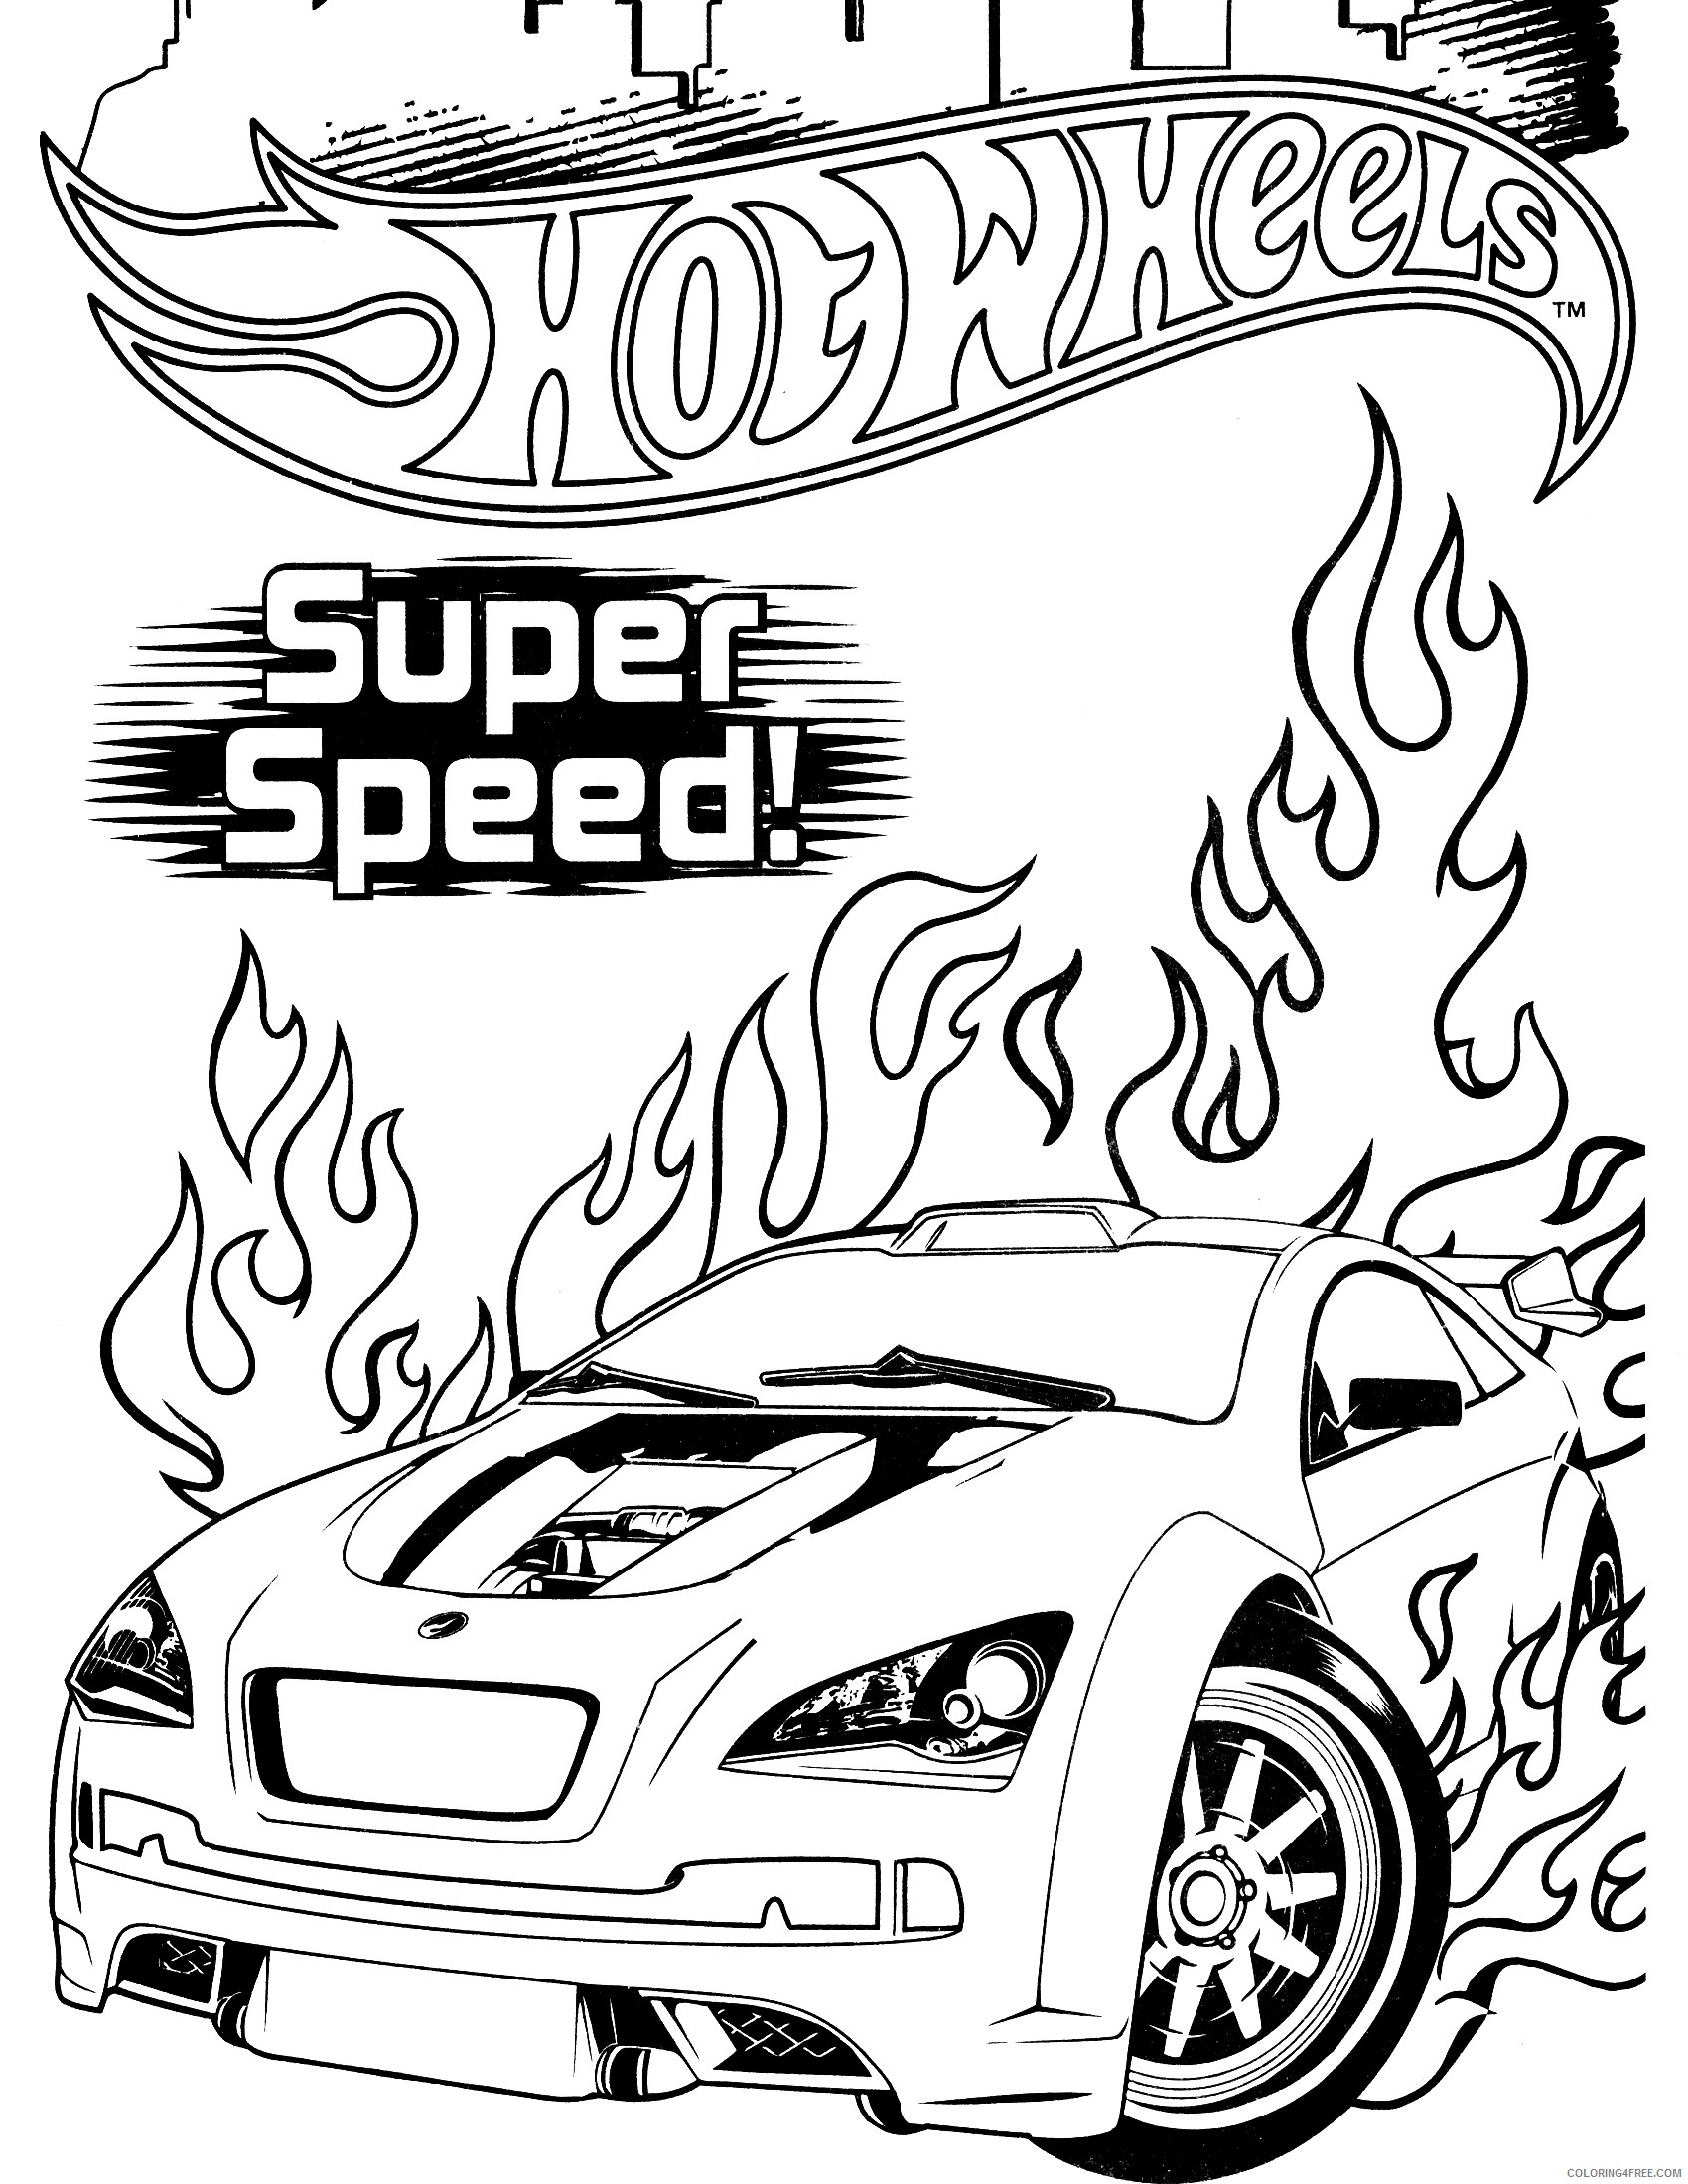 hot wheels coloring pages super speed Coloring4free